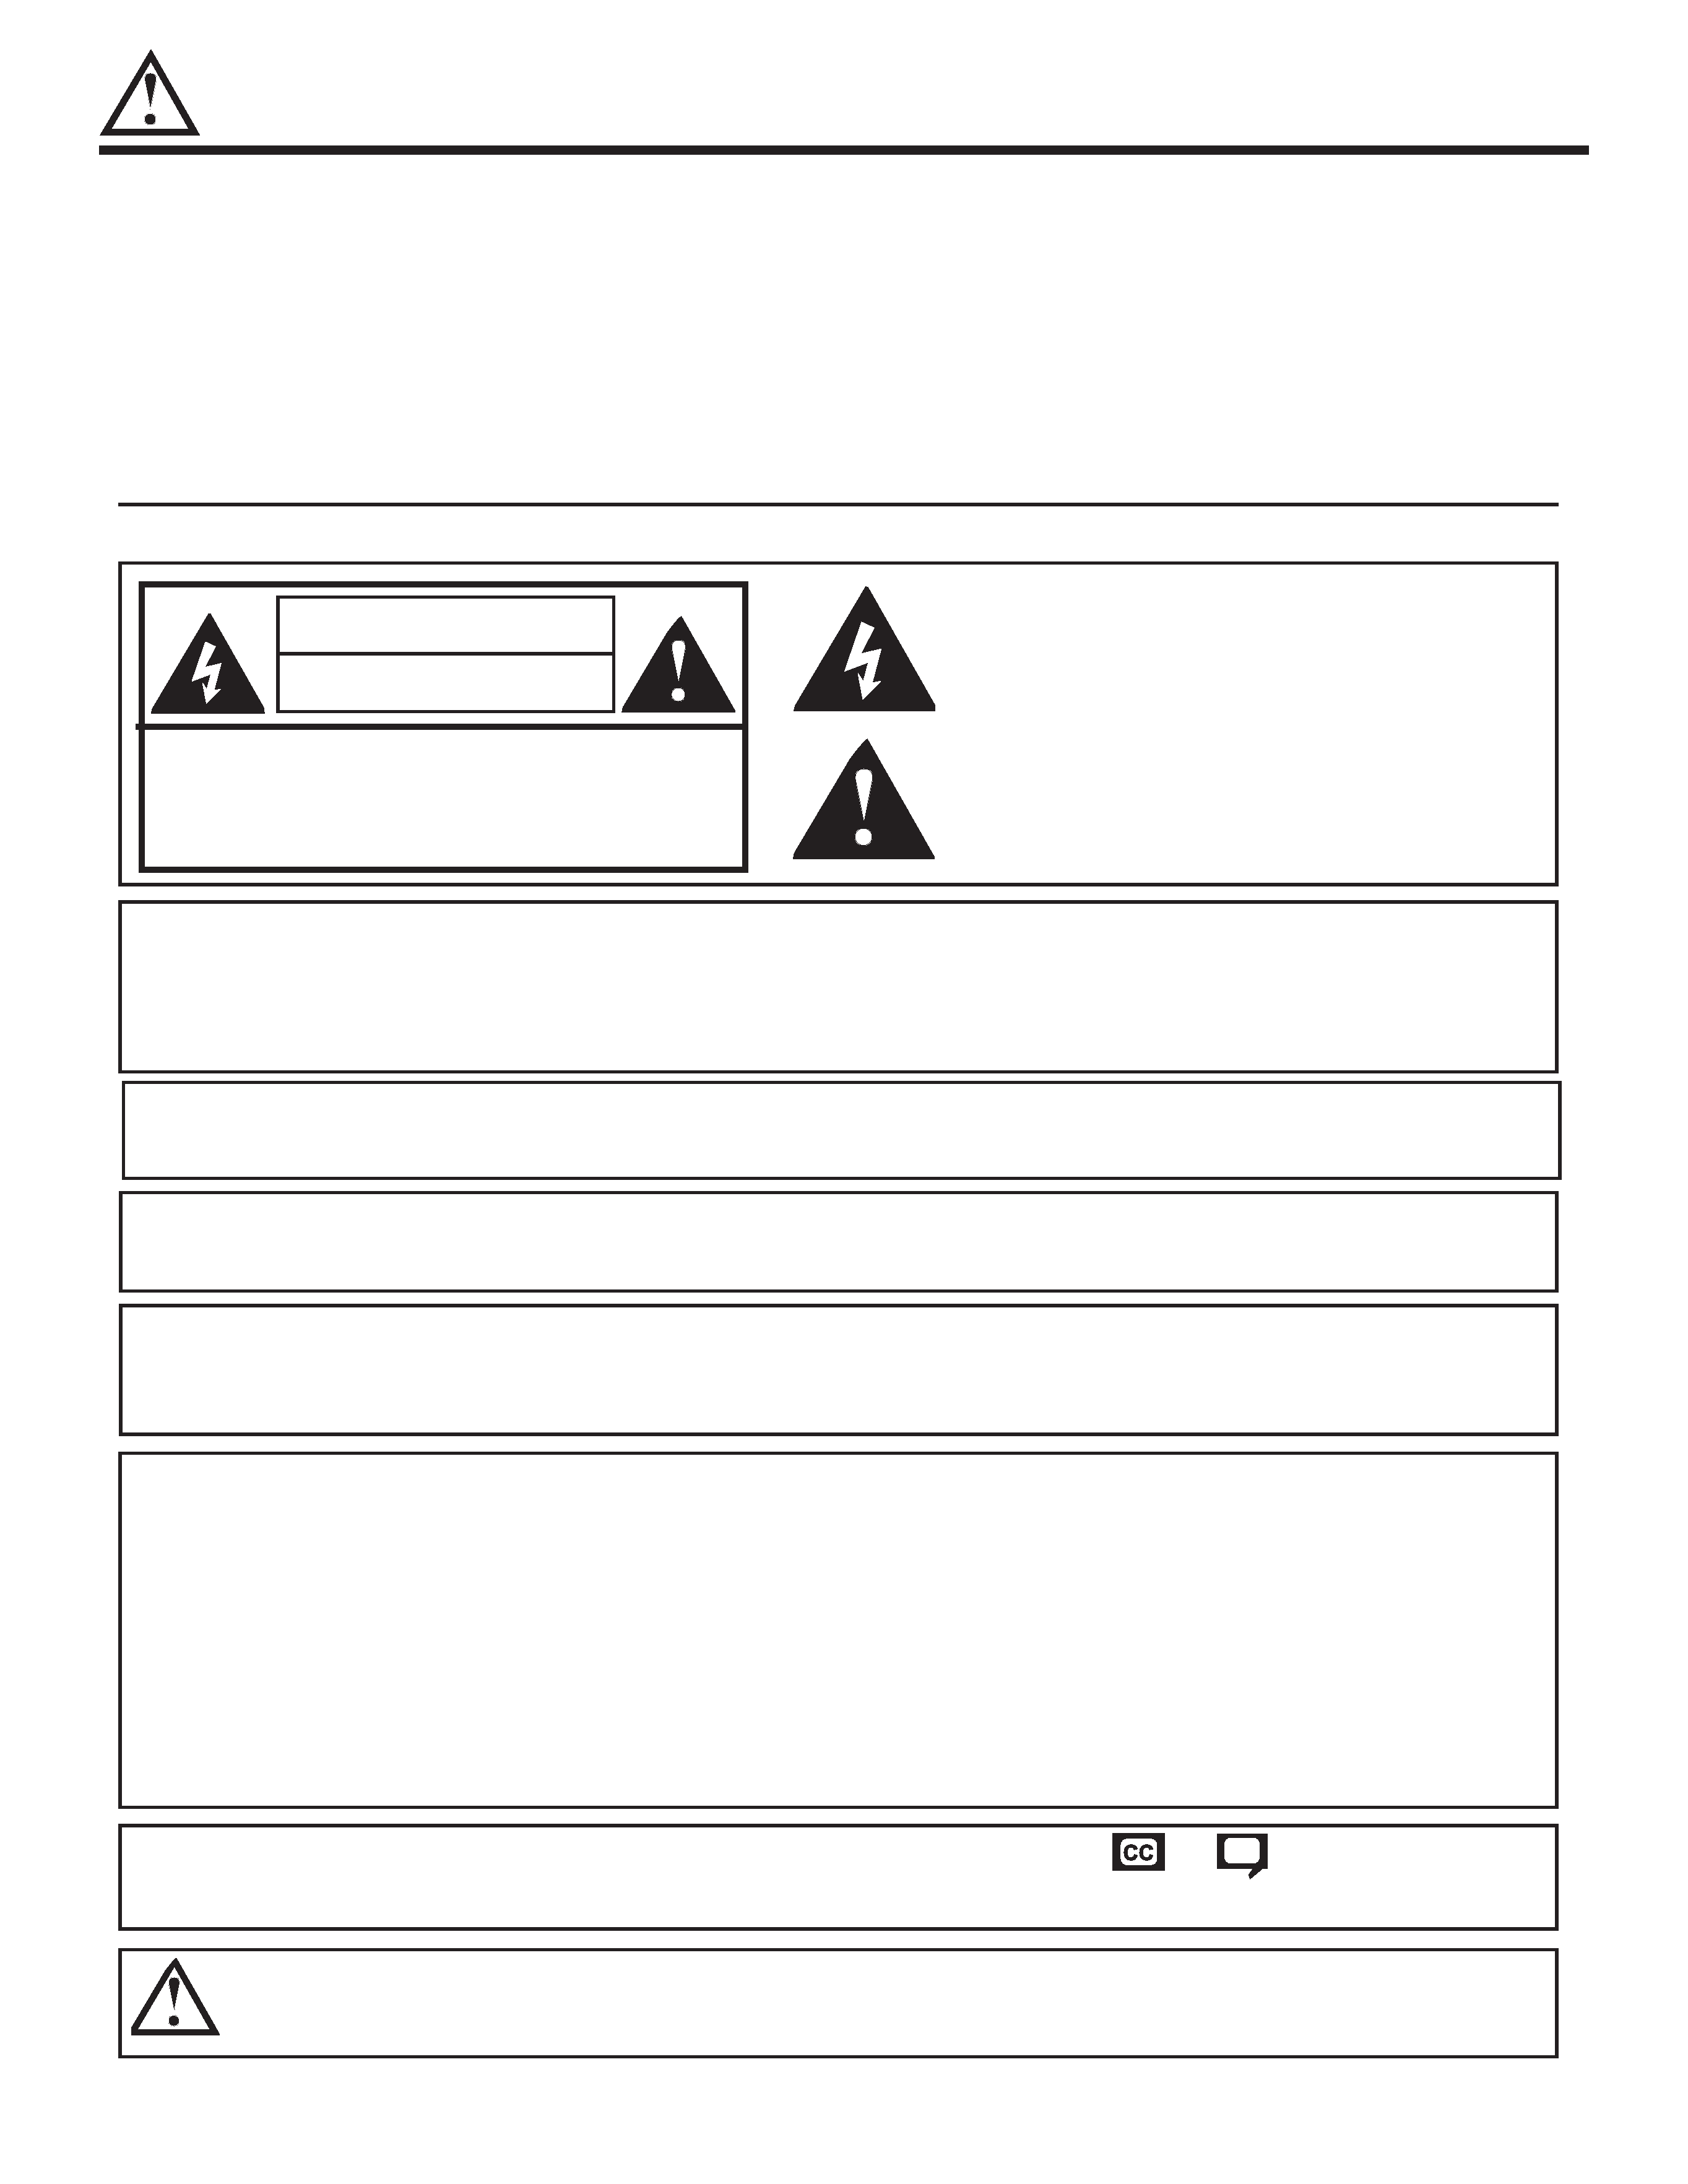 ch products control manager manual